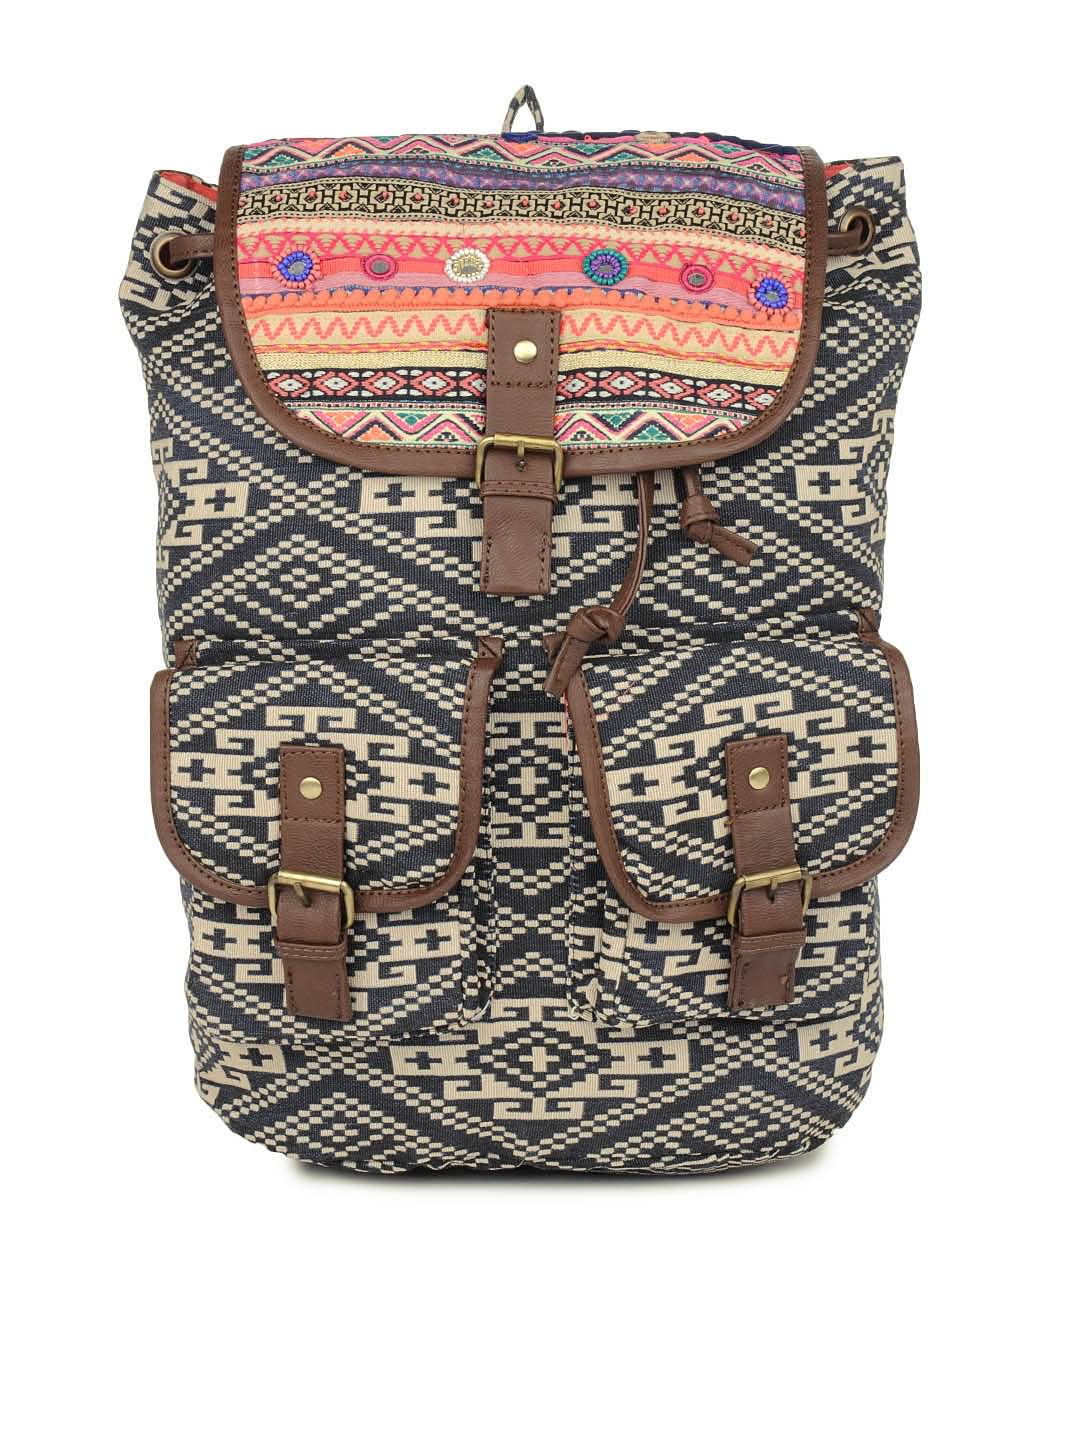 Accessorize-Cream-and-Black-Rucksack_25300ec17b7862ba431bf3fe3e56ff34_images_1080_1440_mini